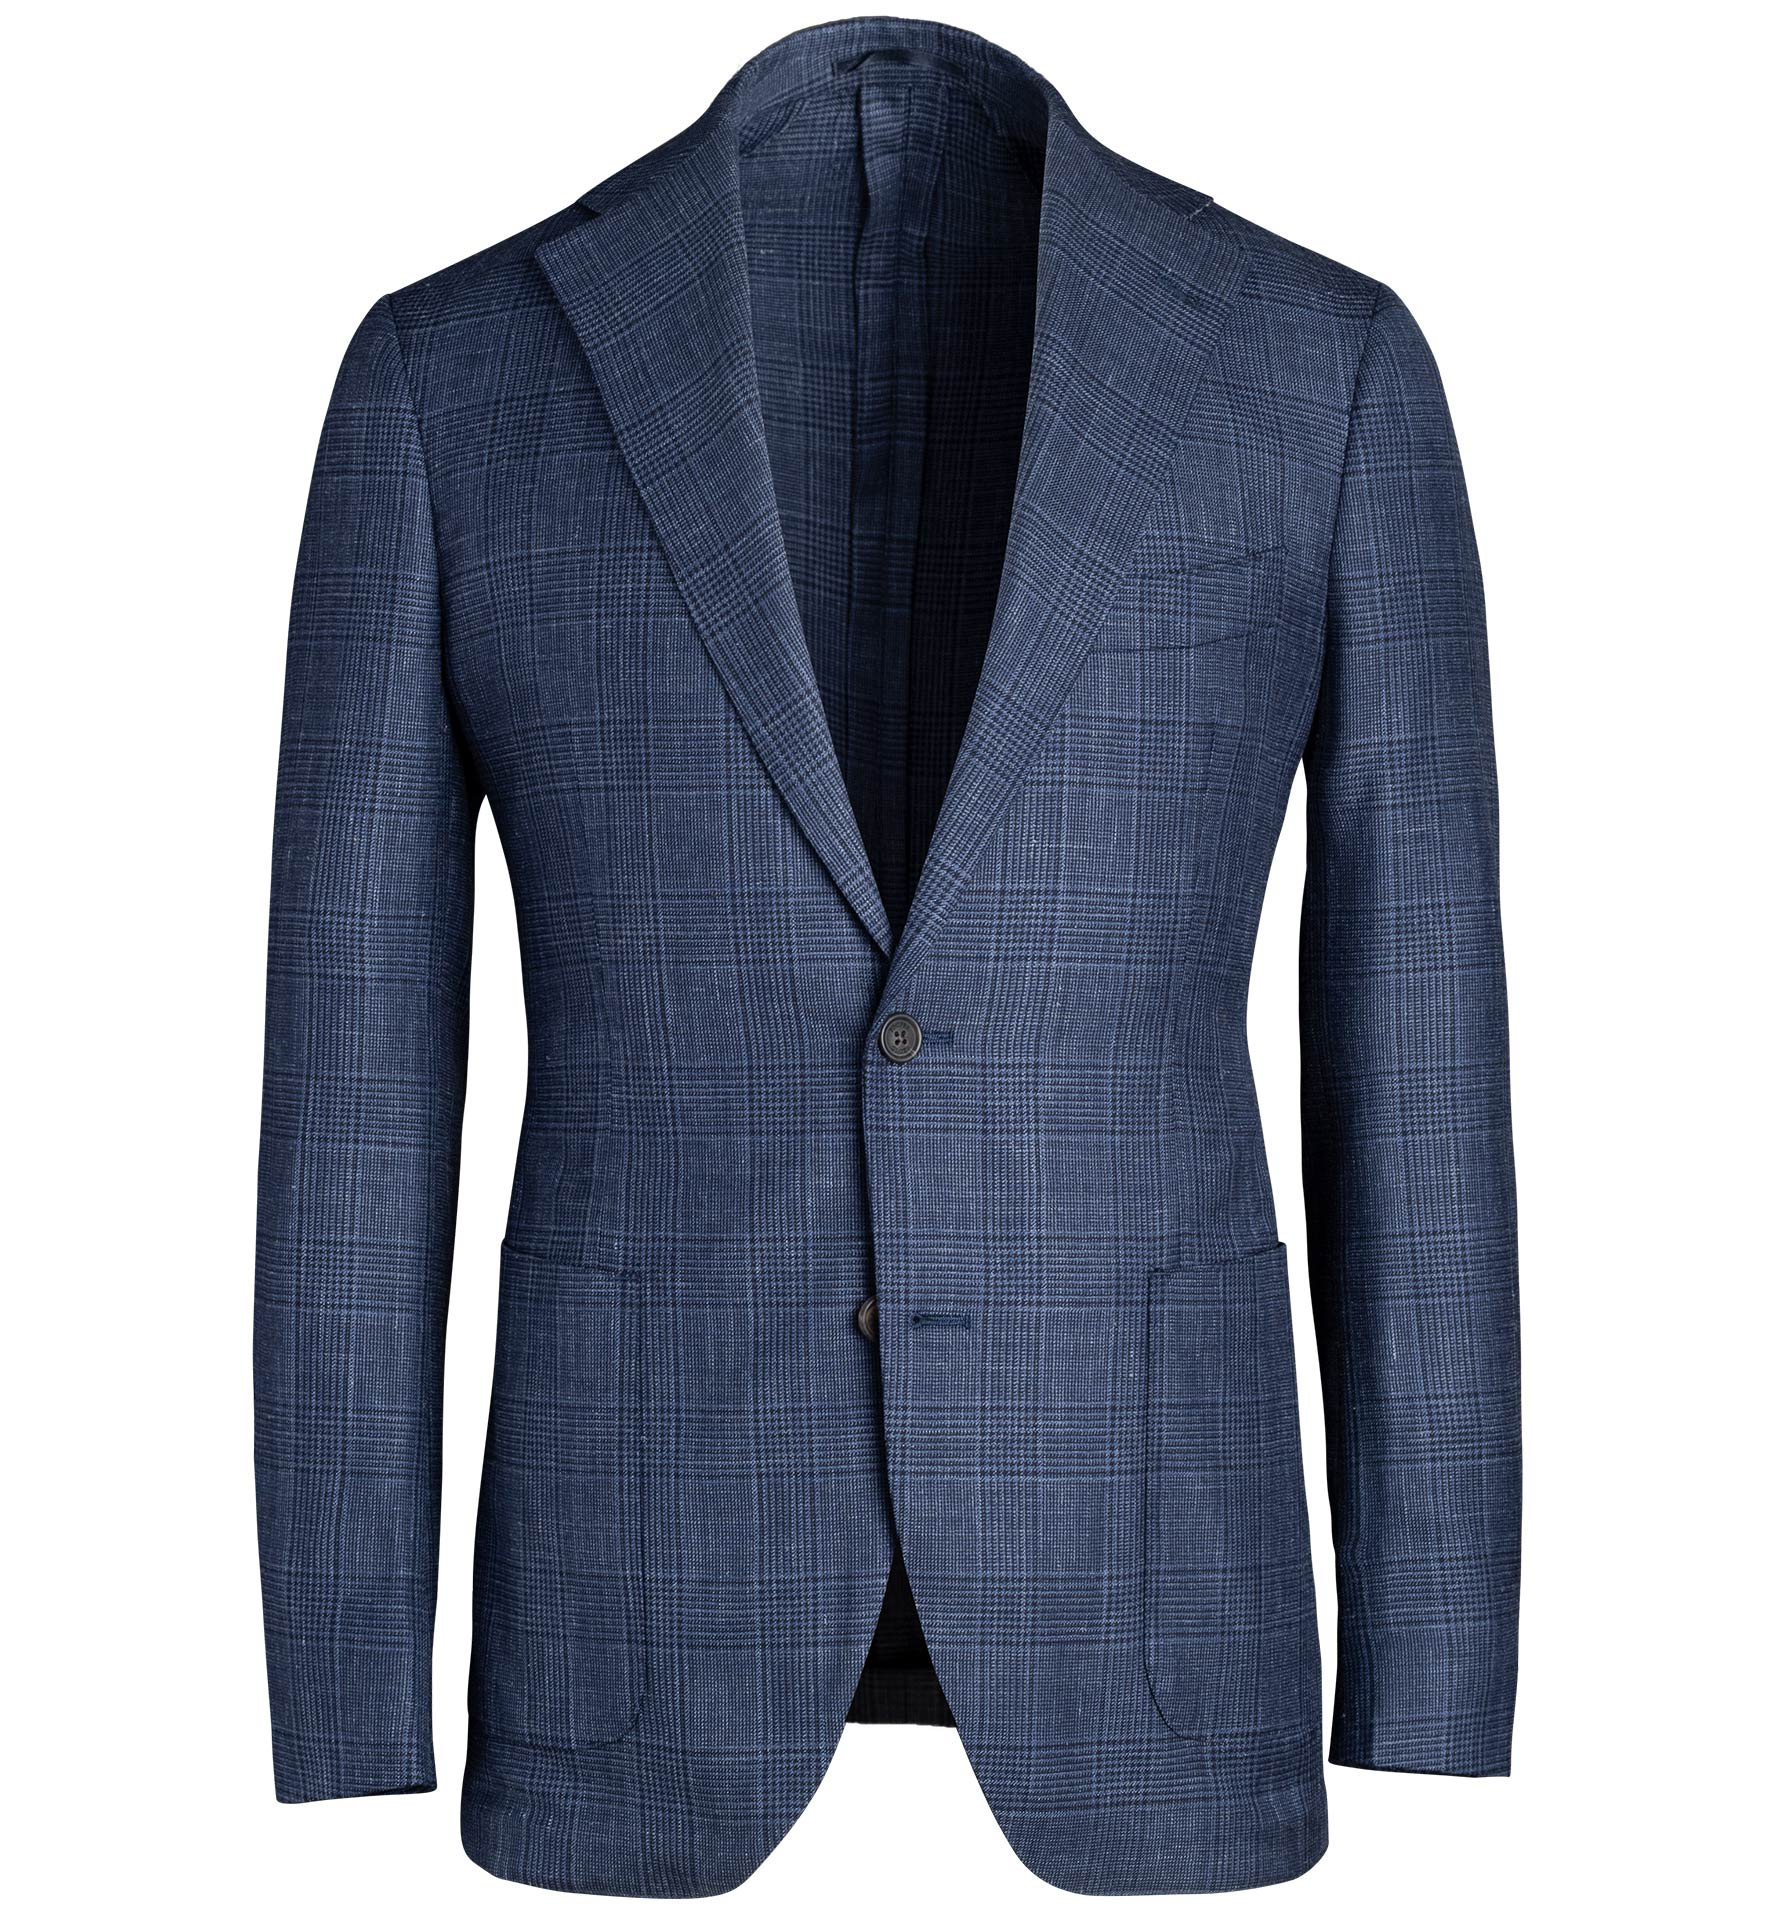 Zoom Image of Bedford Navy Glen Plaid Wool Silk and Linen Jacket